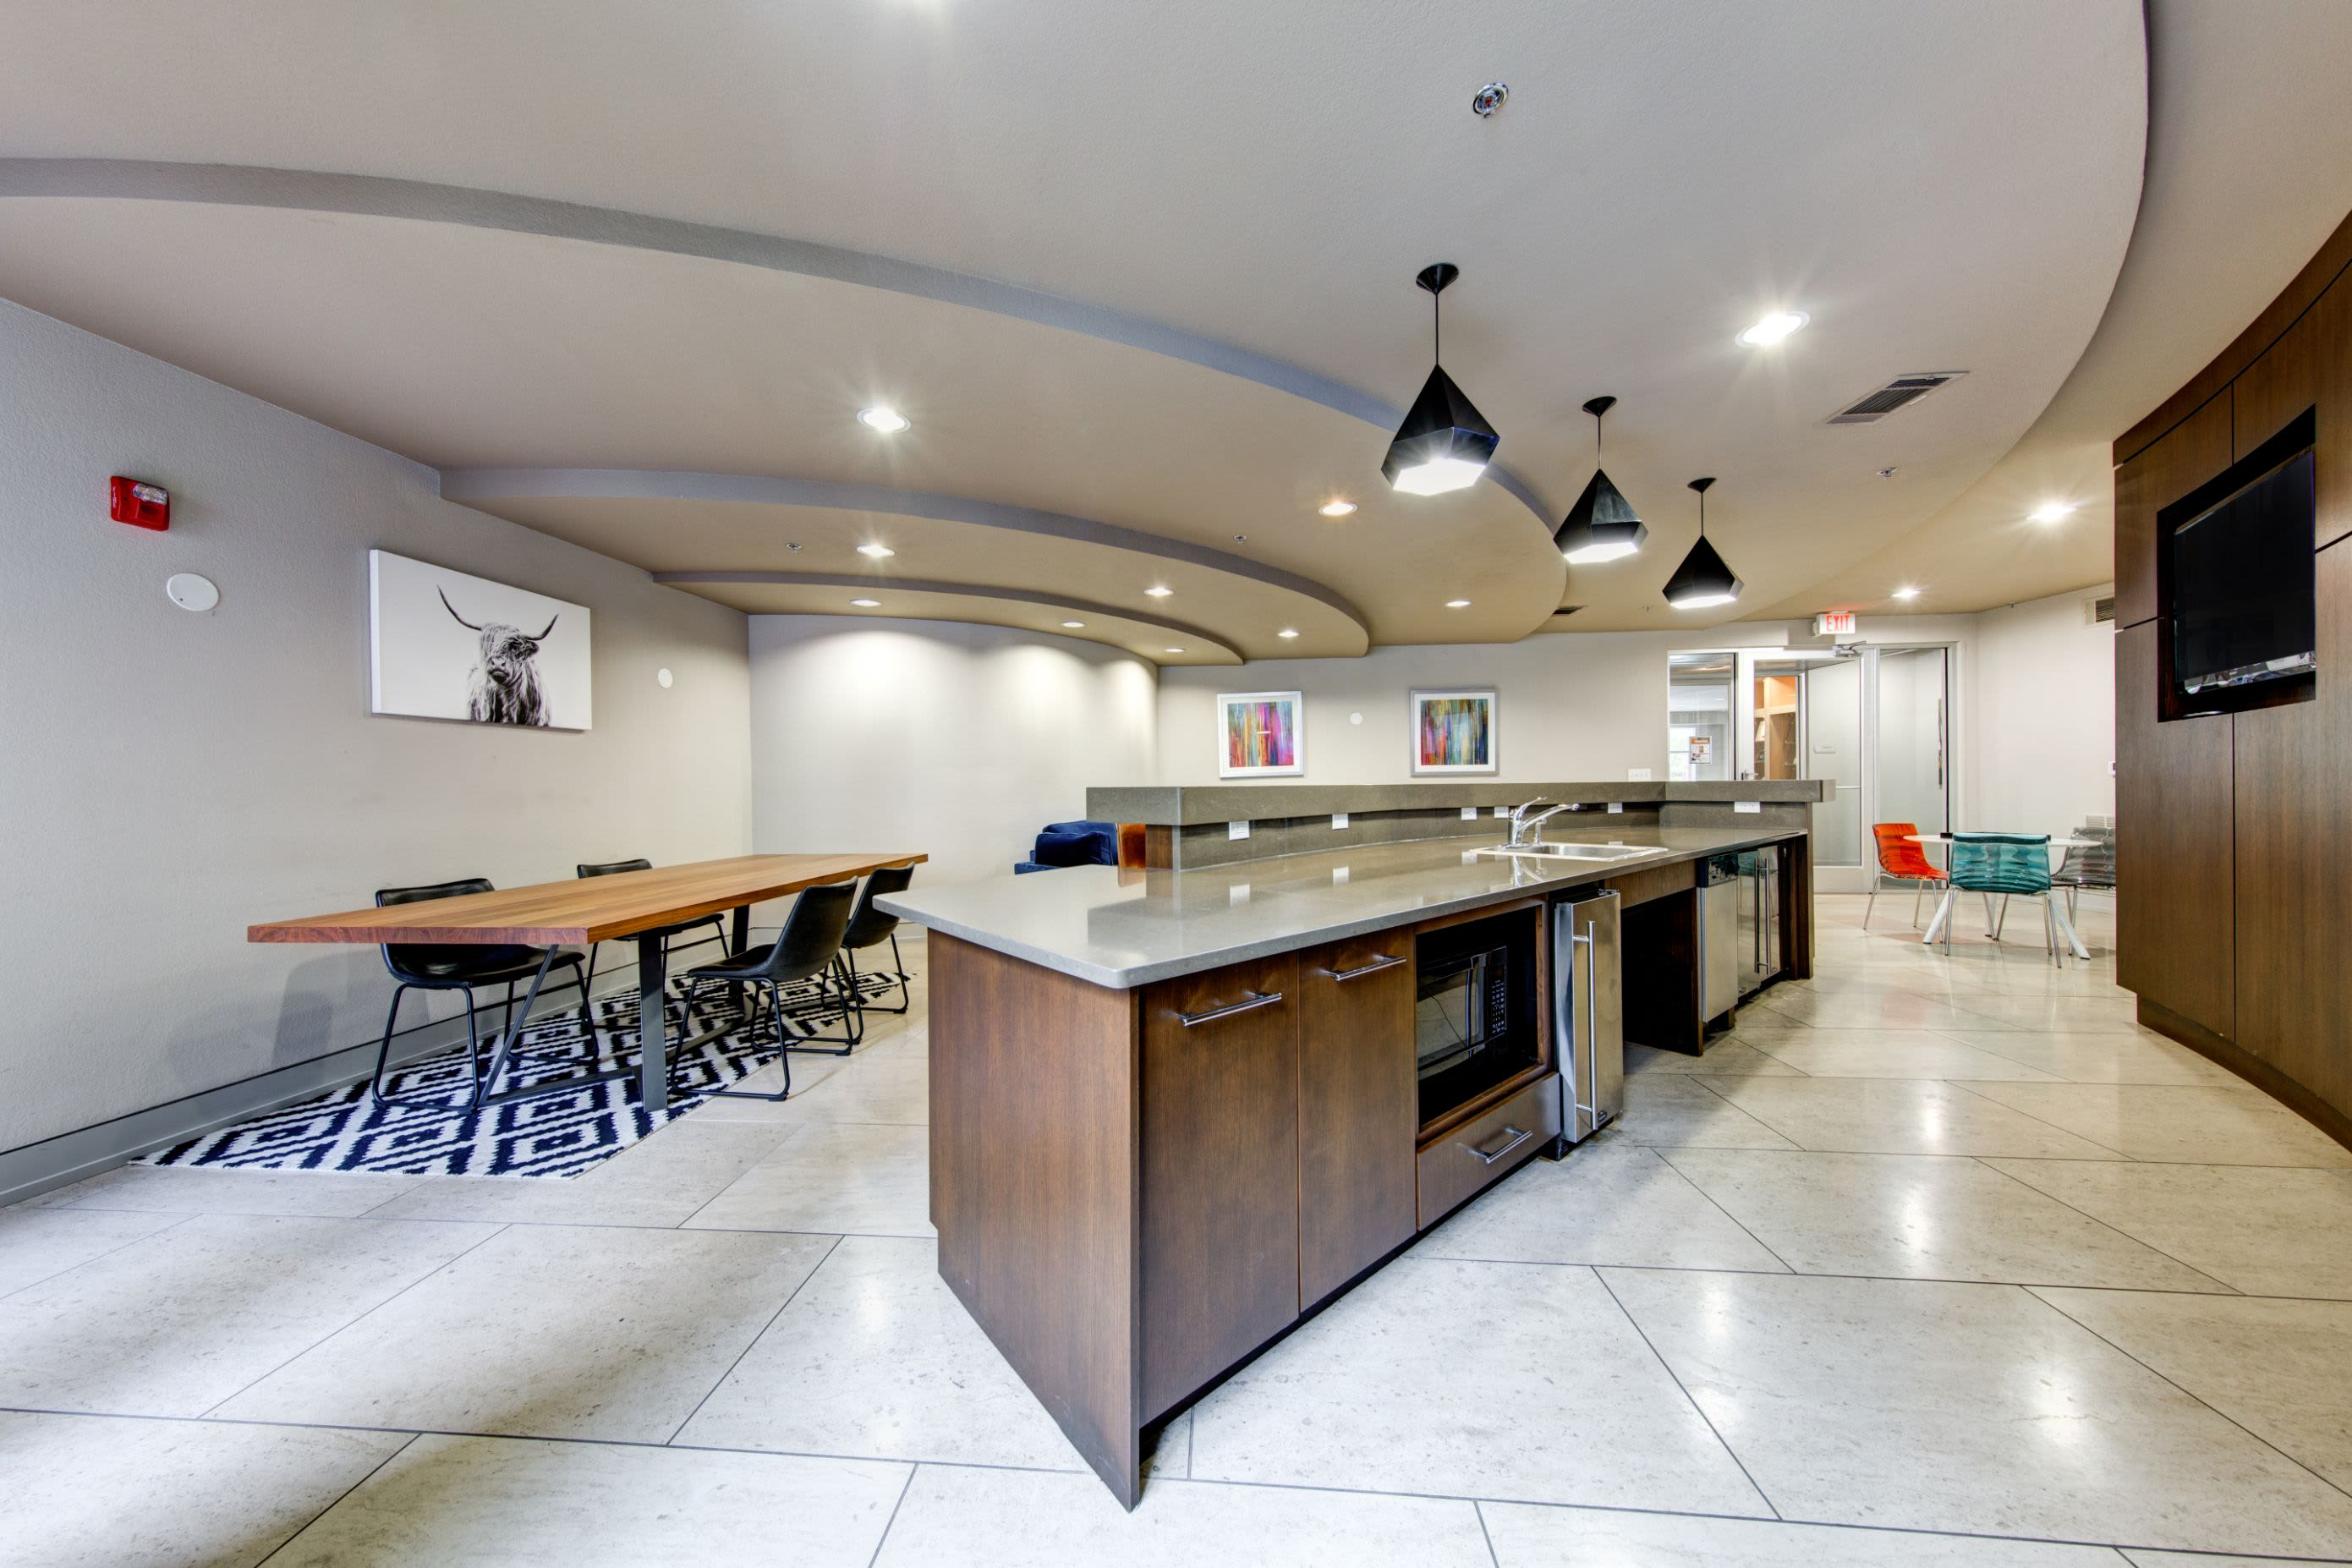 Kitchenette in community clubhouse at The Marq on West 7th in Fort Worth, Texas